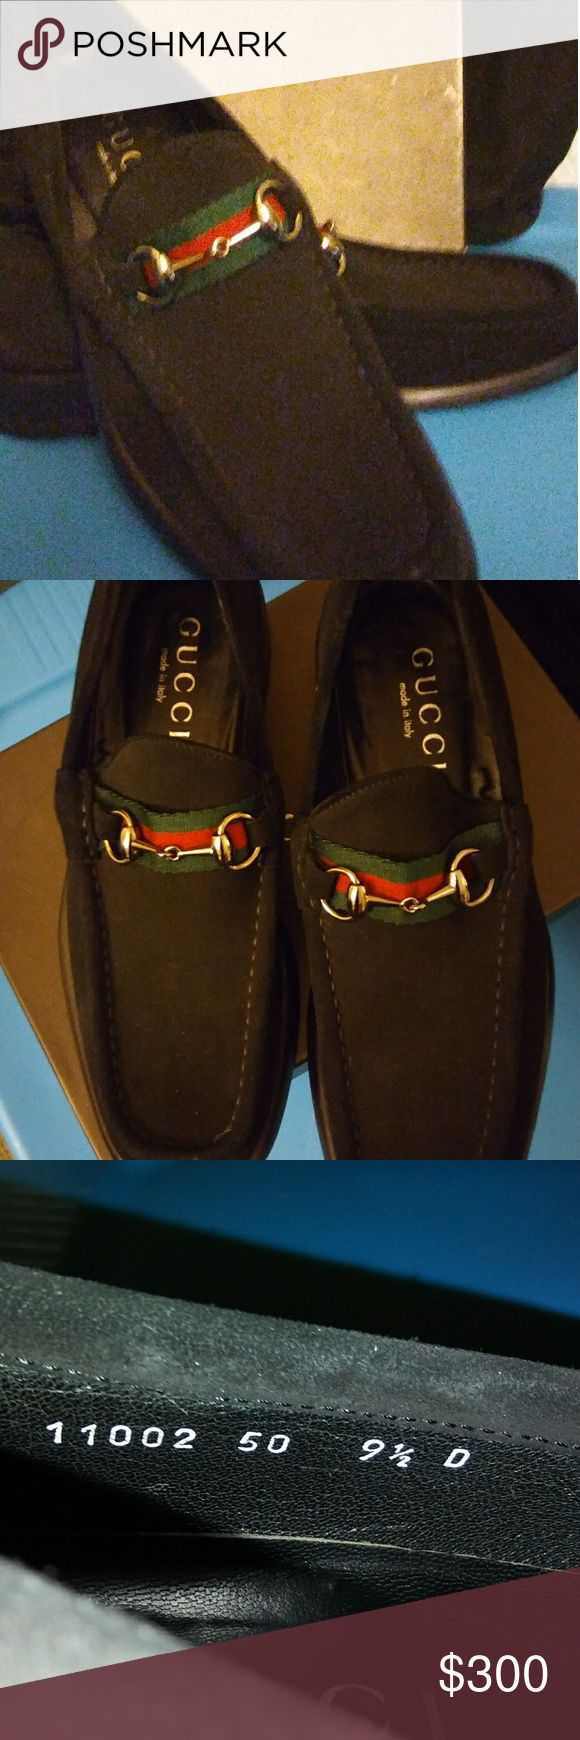 Black Suade classic horsbit  loaferl Suade classic horsebit loafer with green and red on horsebit. I had bottom of sole to cobbler to paint botton so if you kneel down at church they show now wear. Size9 1/2. Im looking for mens burberry shirts in size M Longsleeve M. Im willing to trade. Gucci Shoes Flats & Loafers